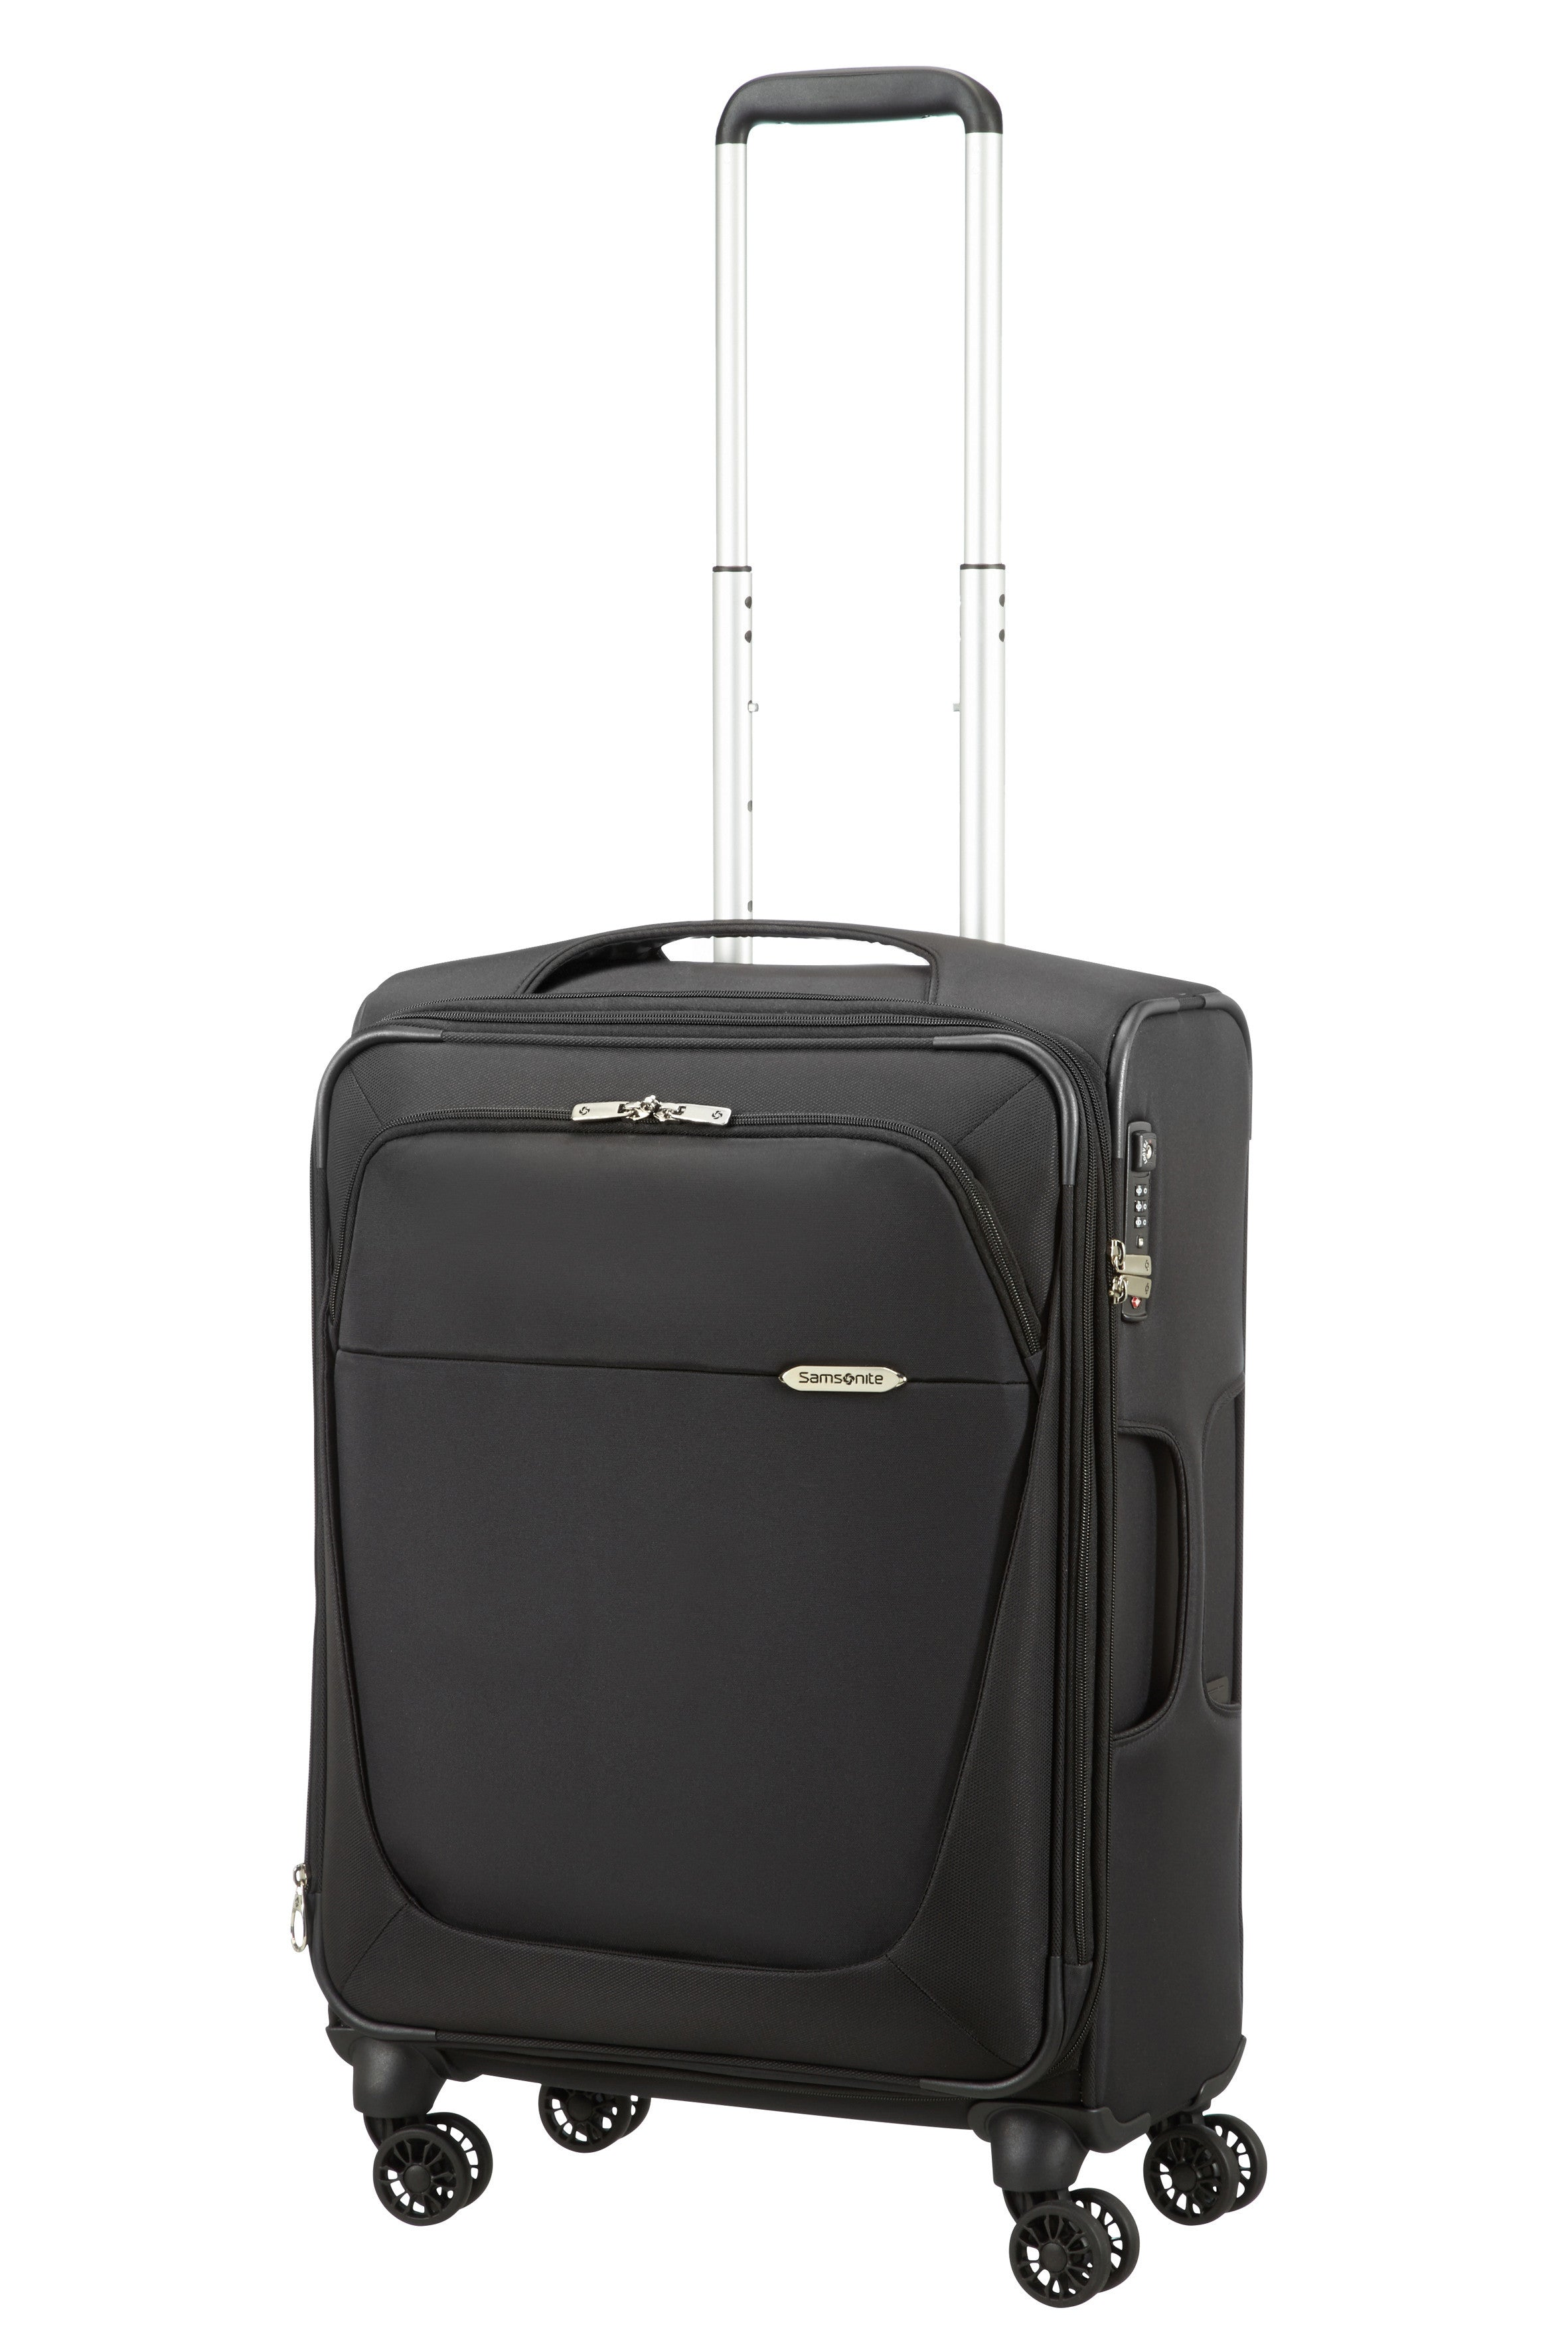 Samsonite B-Lite 3 Spinner 63cm EXP Black